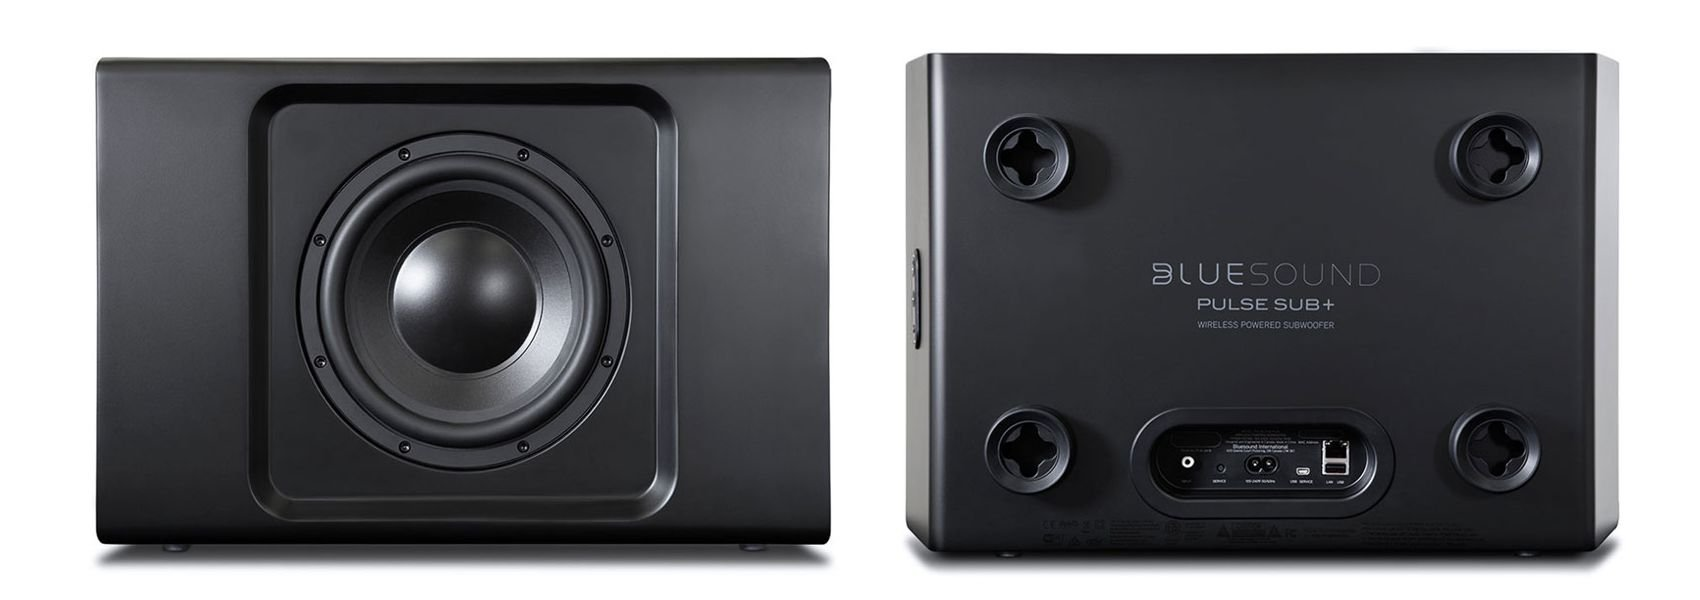 Bluesound Pulse Sub+ Wireless Subwoofer